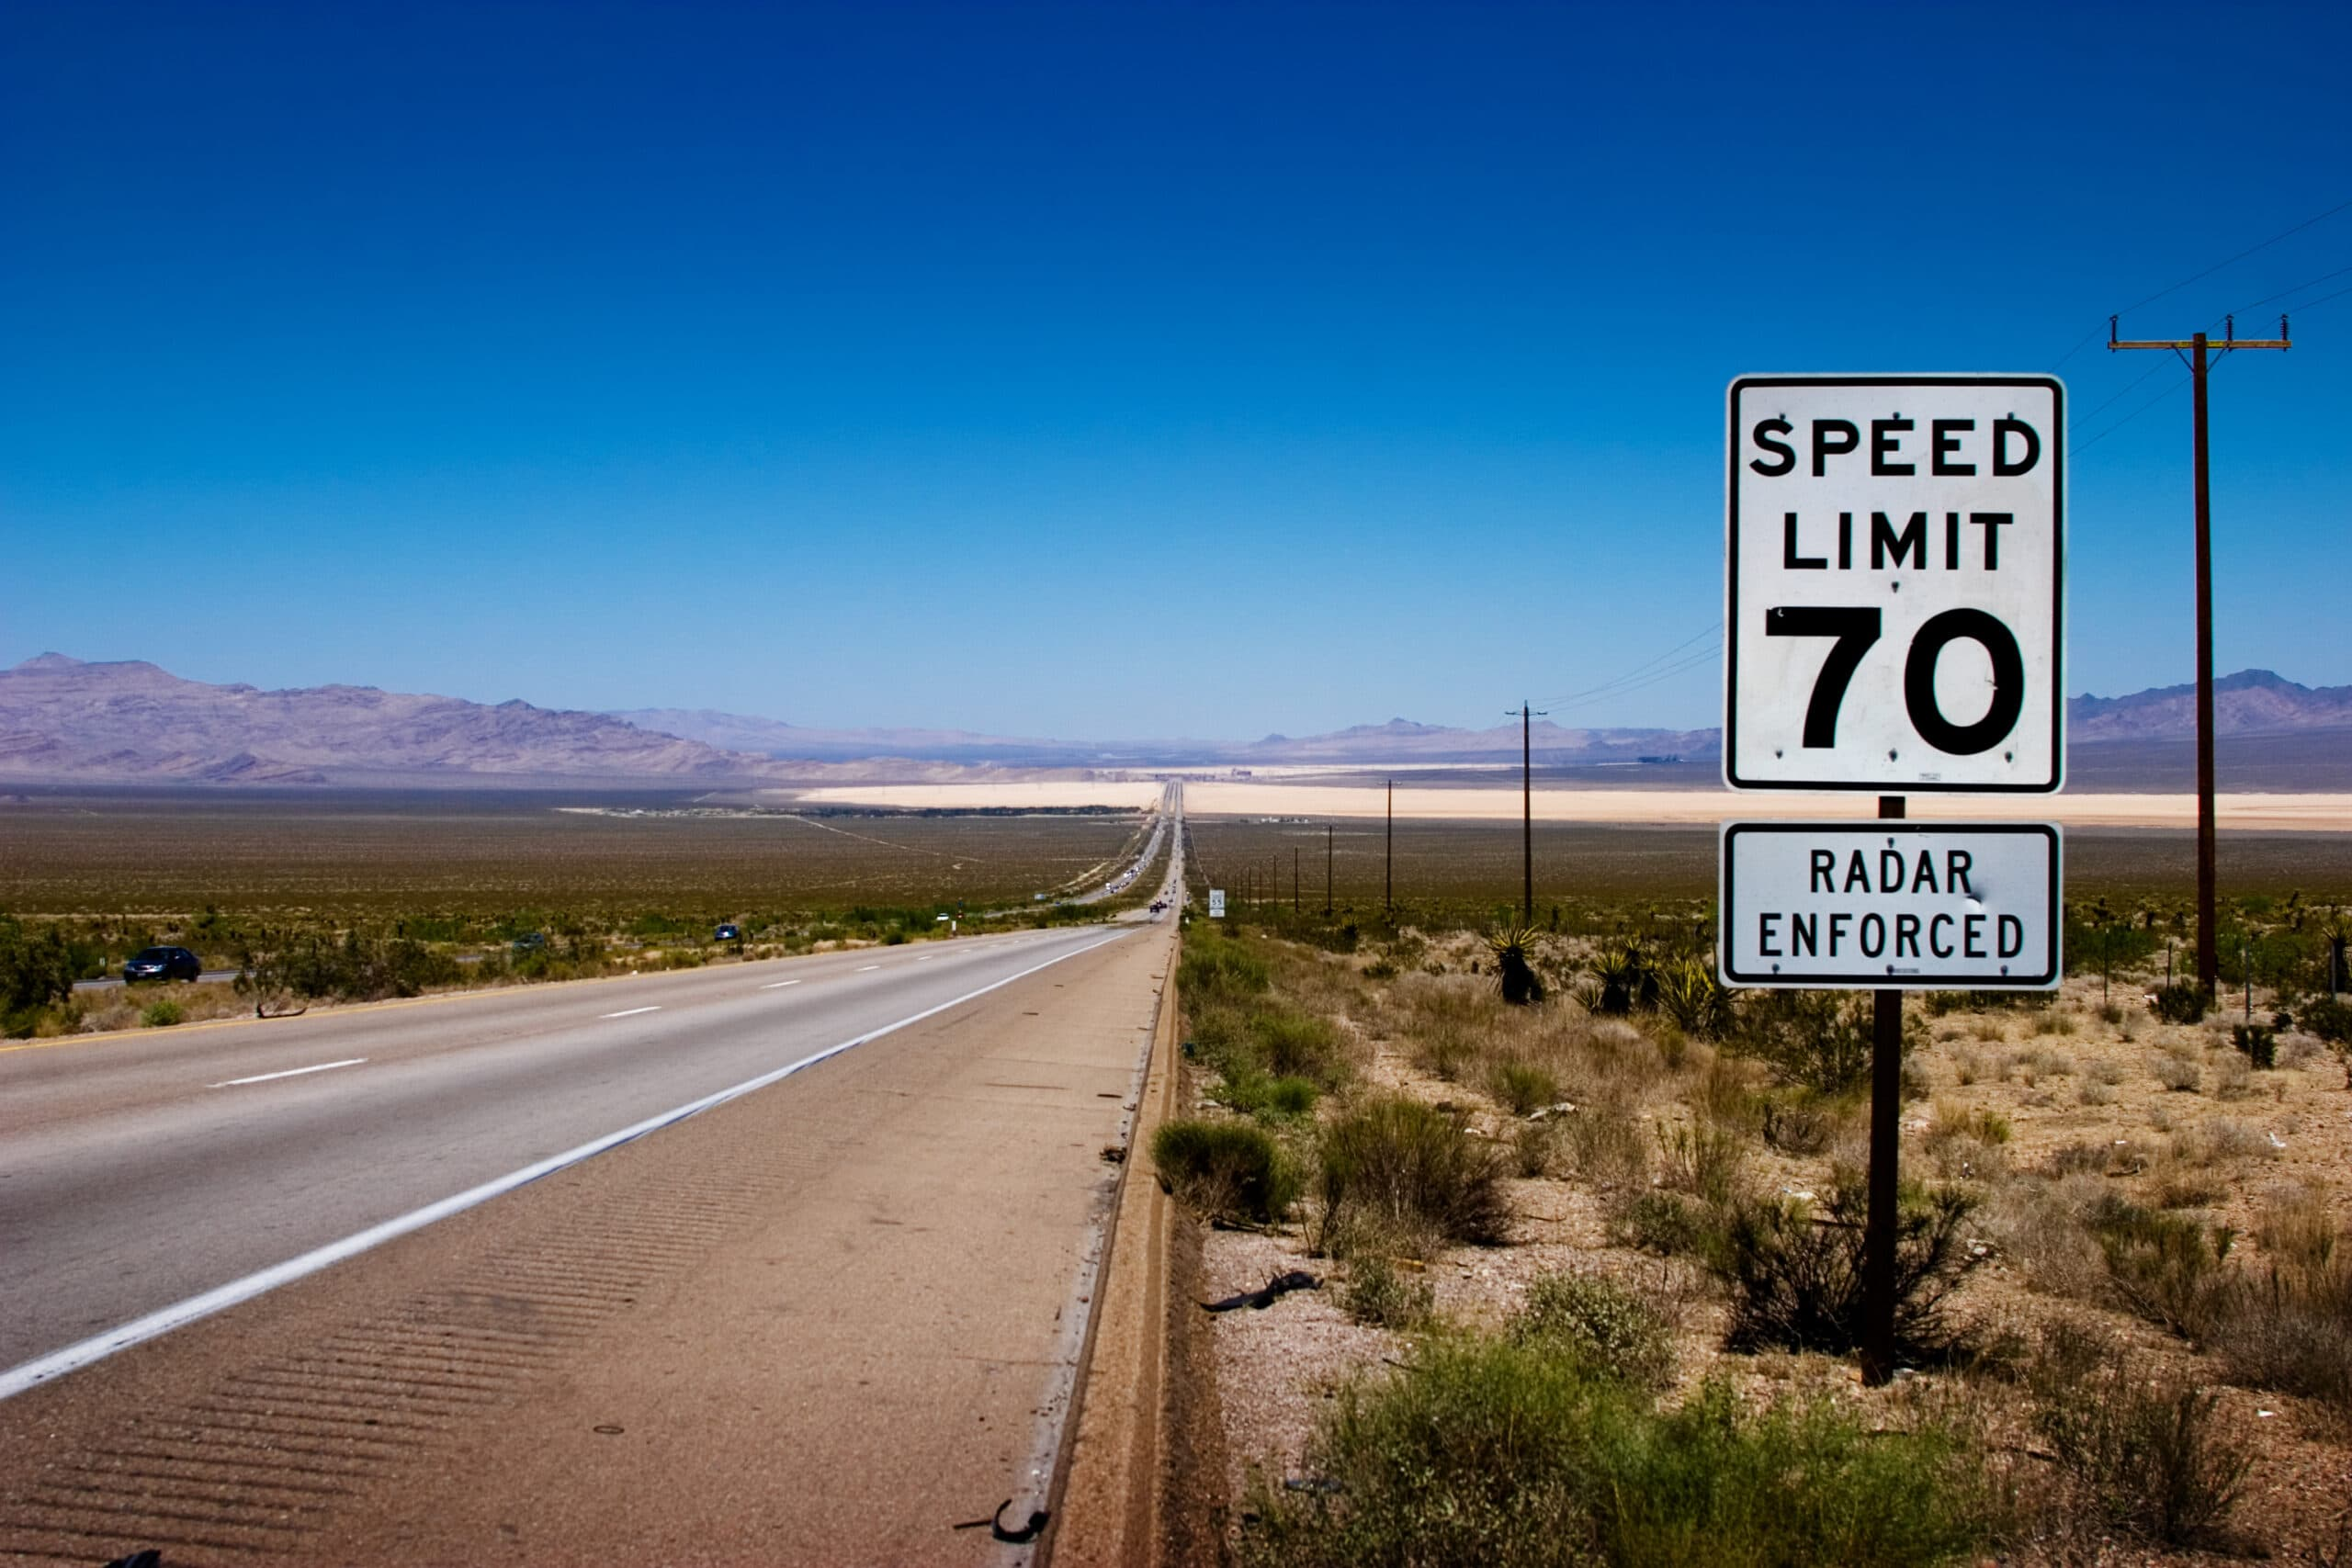 An open road in America with a radar-enforced speed limit of 70 mph.